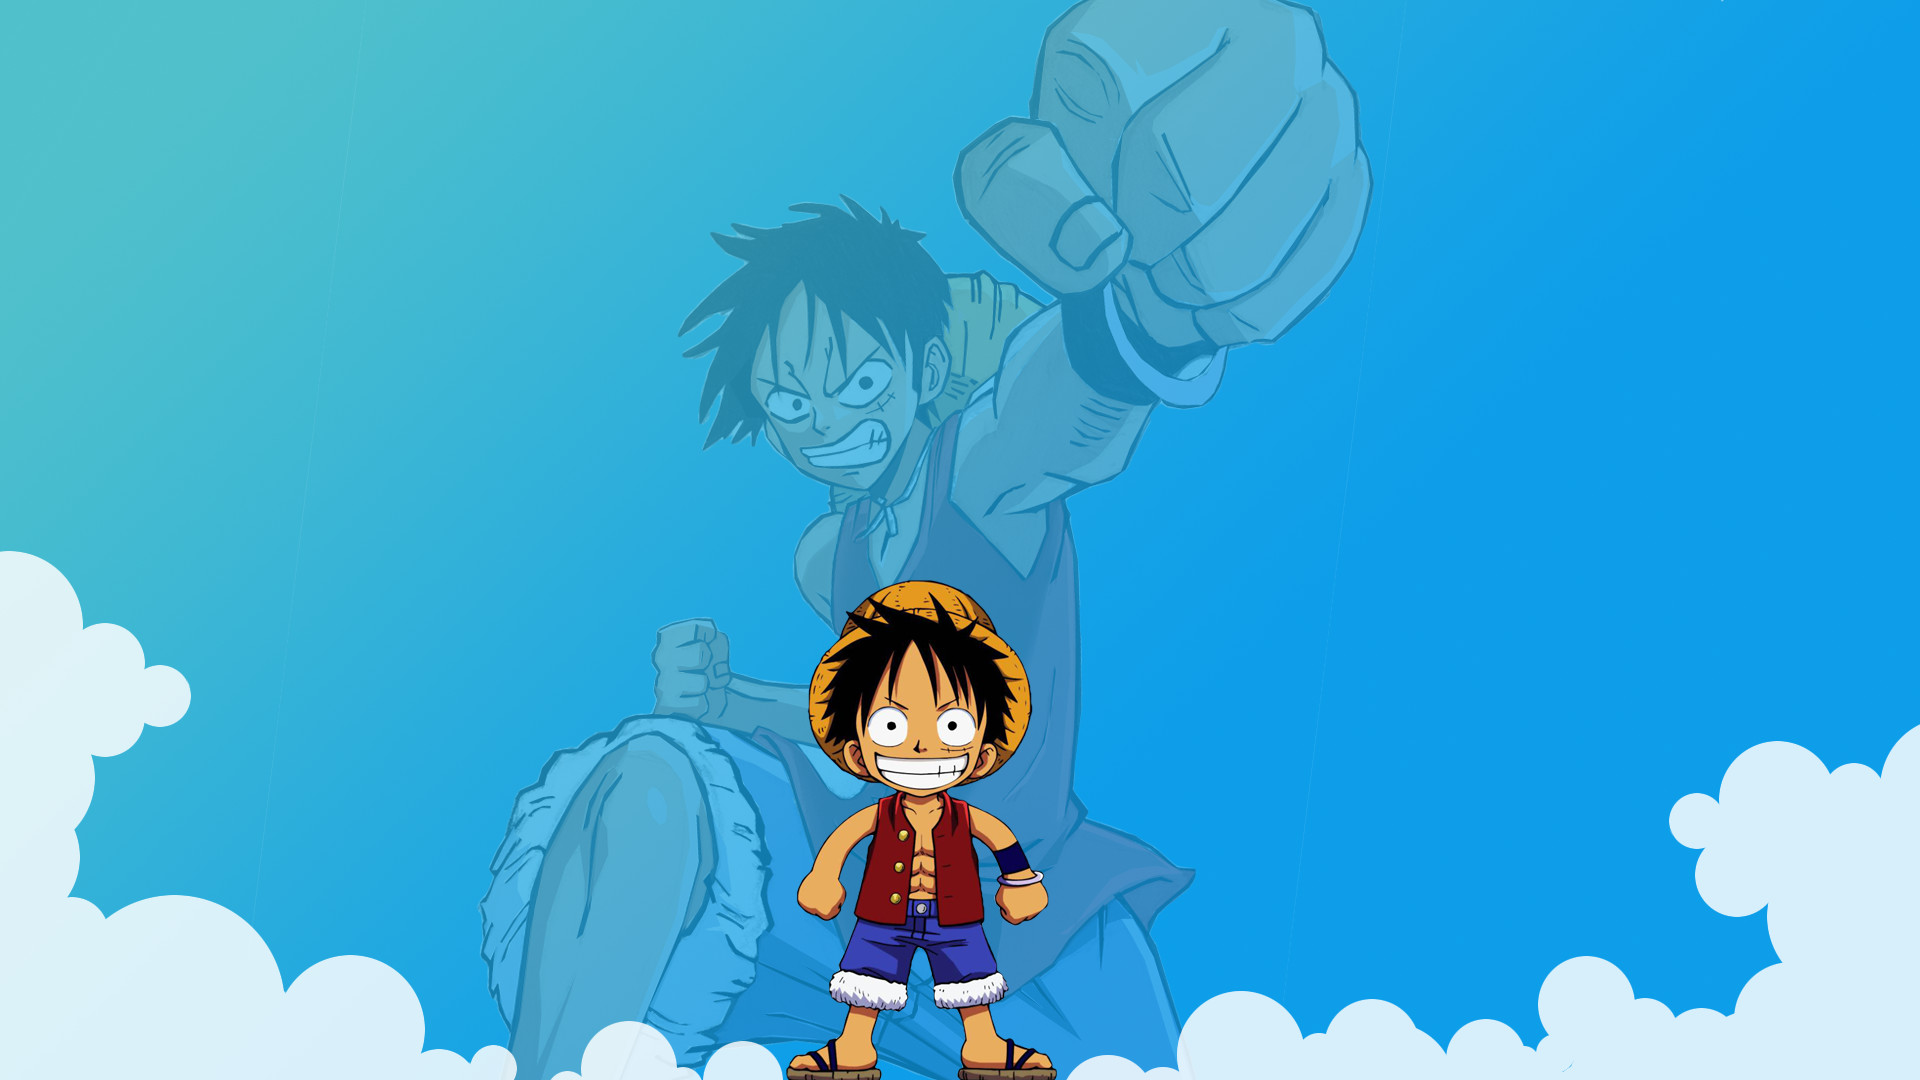 1920x1080 Anime - One Piece Monkey D. Luffy Wallpaper